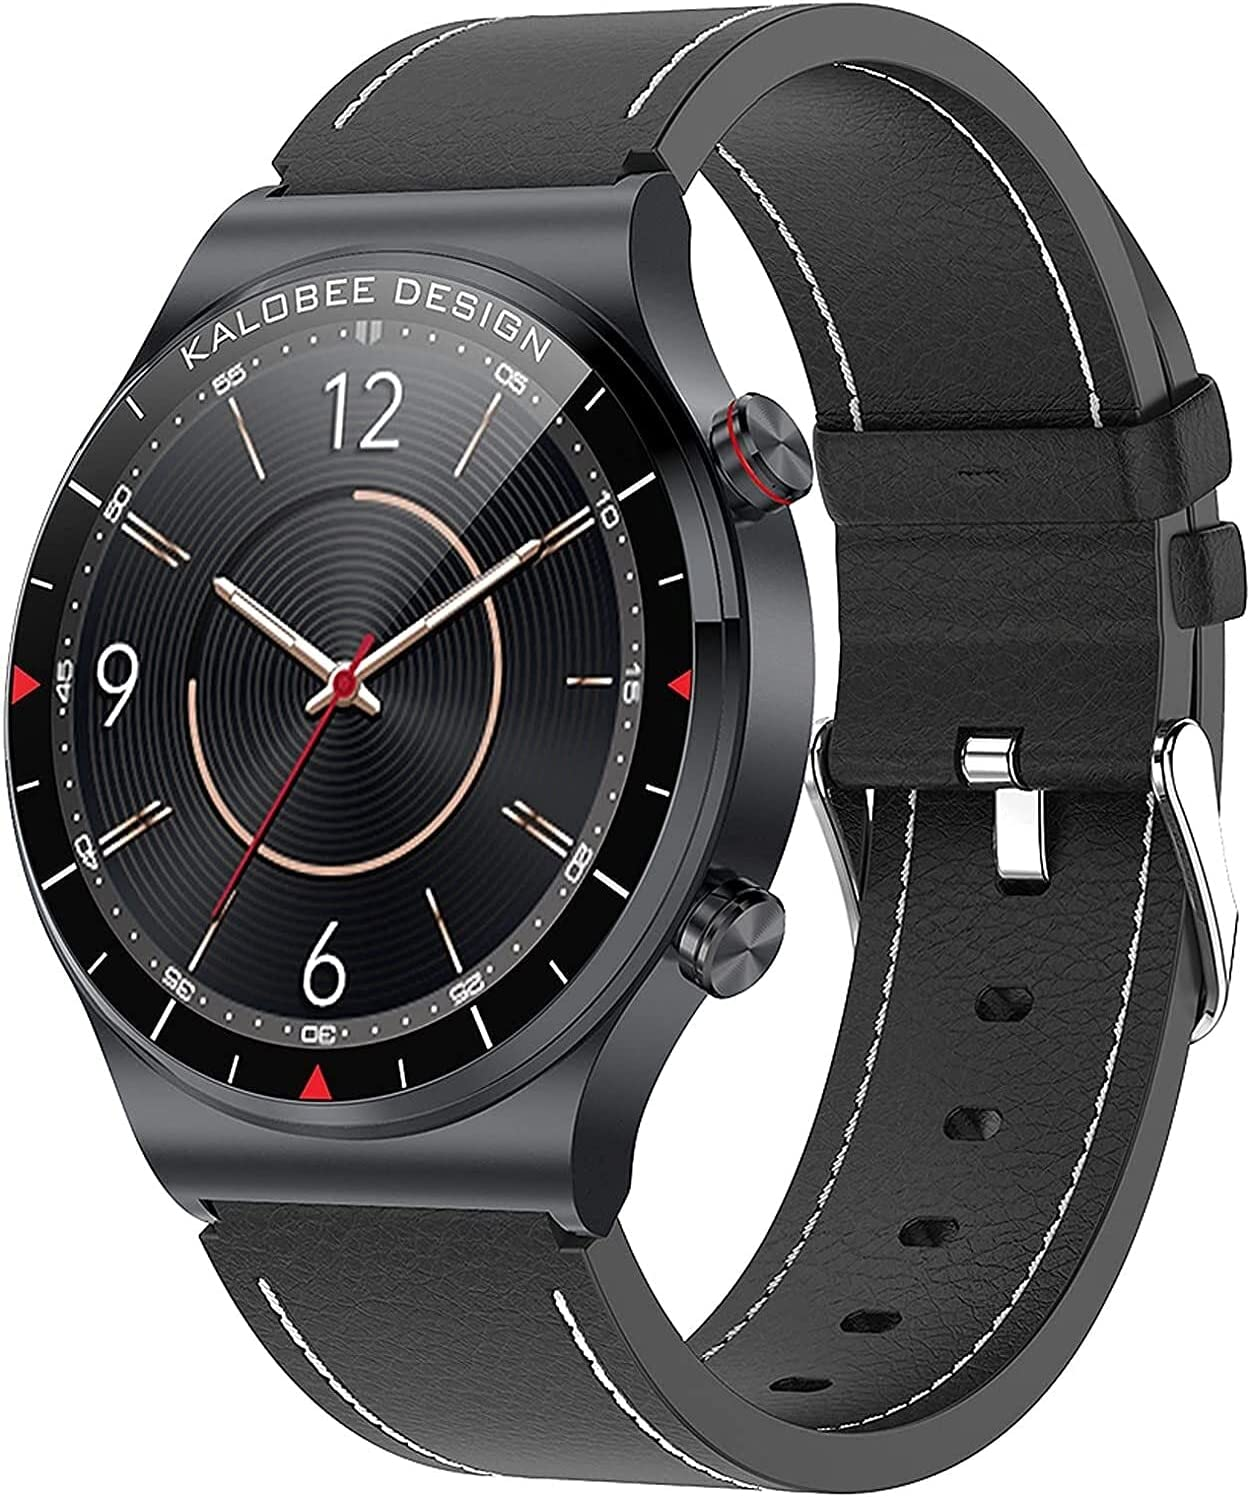 QHG Business Smart Watch Bluetooth Indefinitely Courier shipping free shipping Call Music Tr Fitness Control